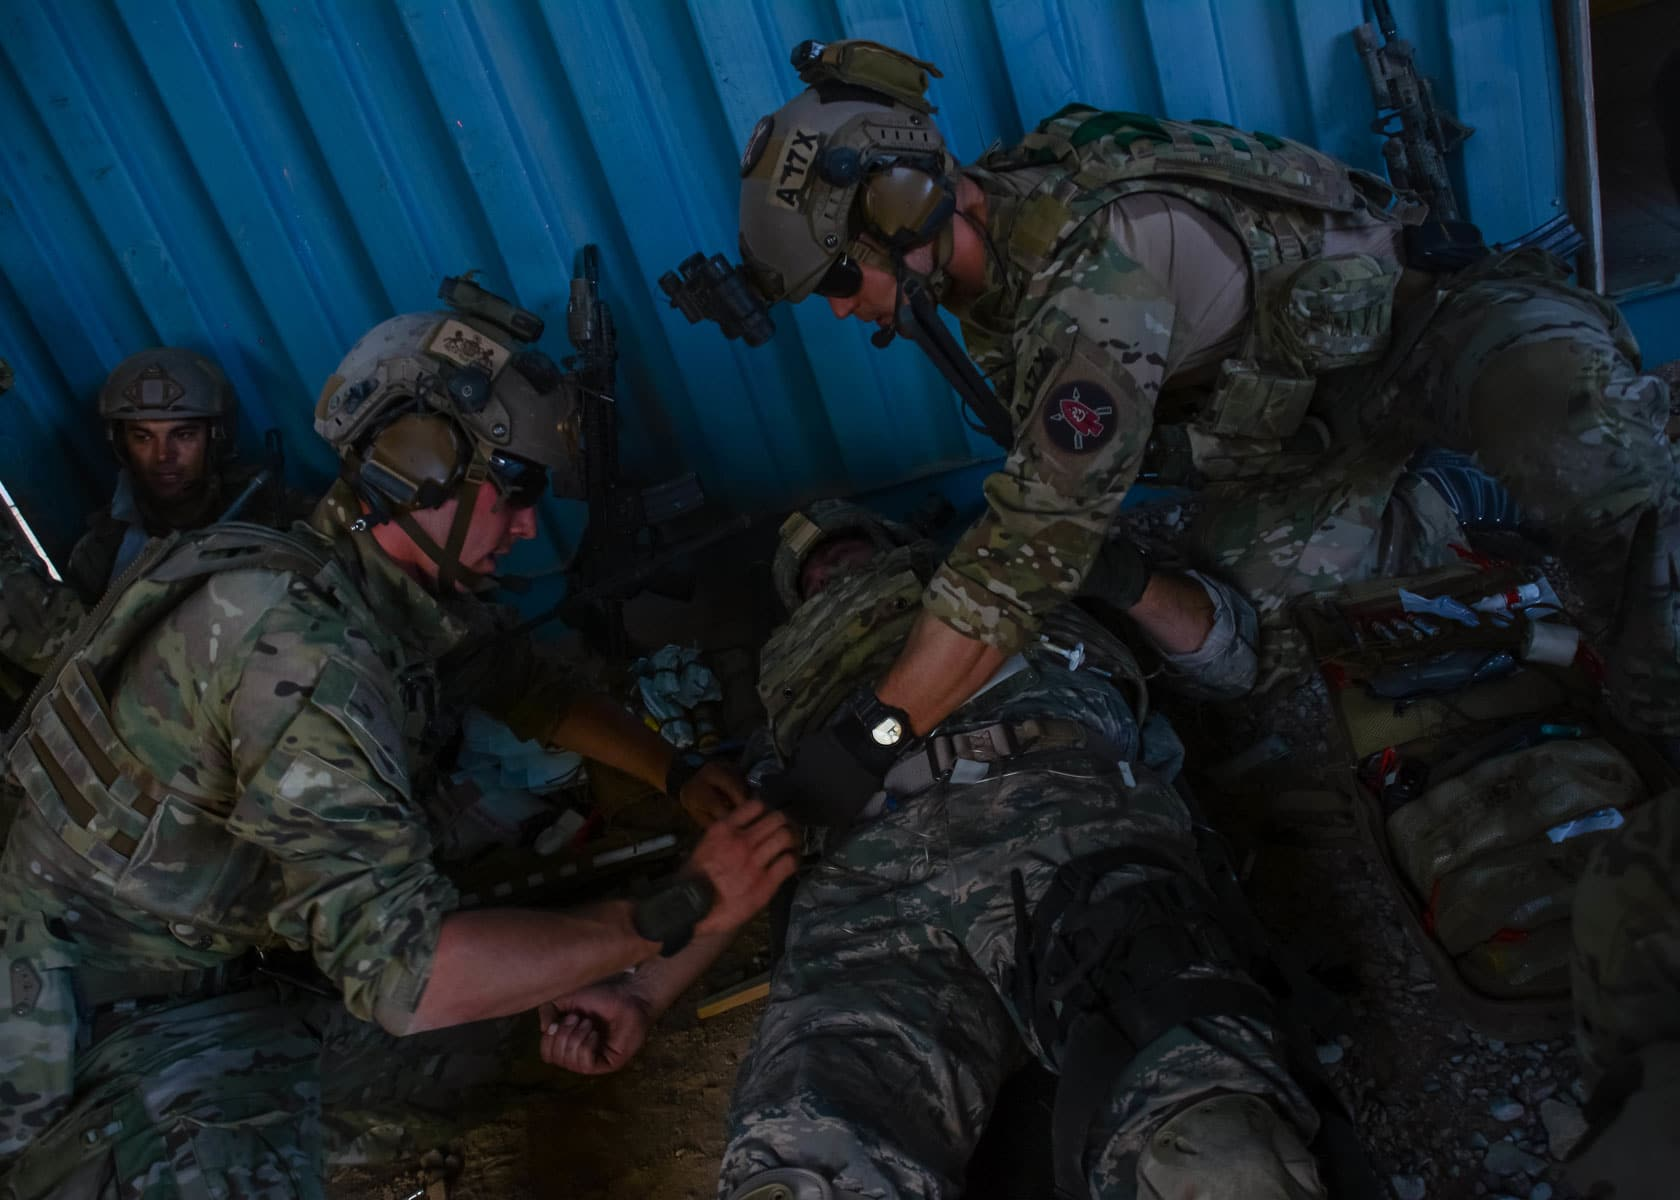 Special Forces Medics from 10th Special Forces Group (Airborne) evaluate a simulated casualty during a training exercise.